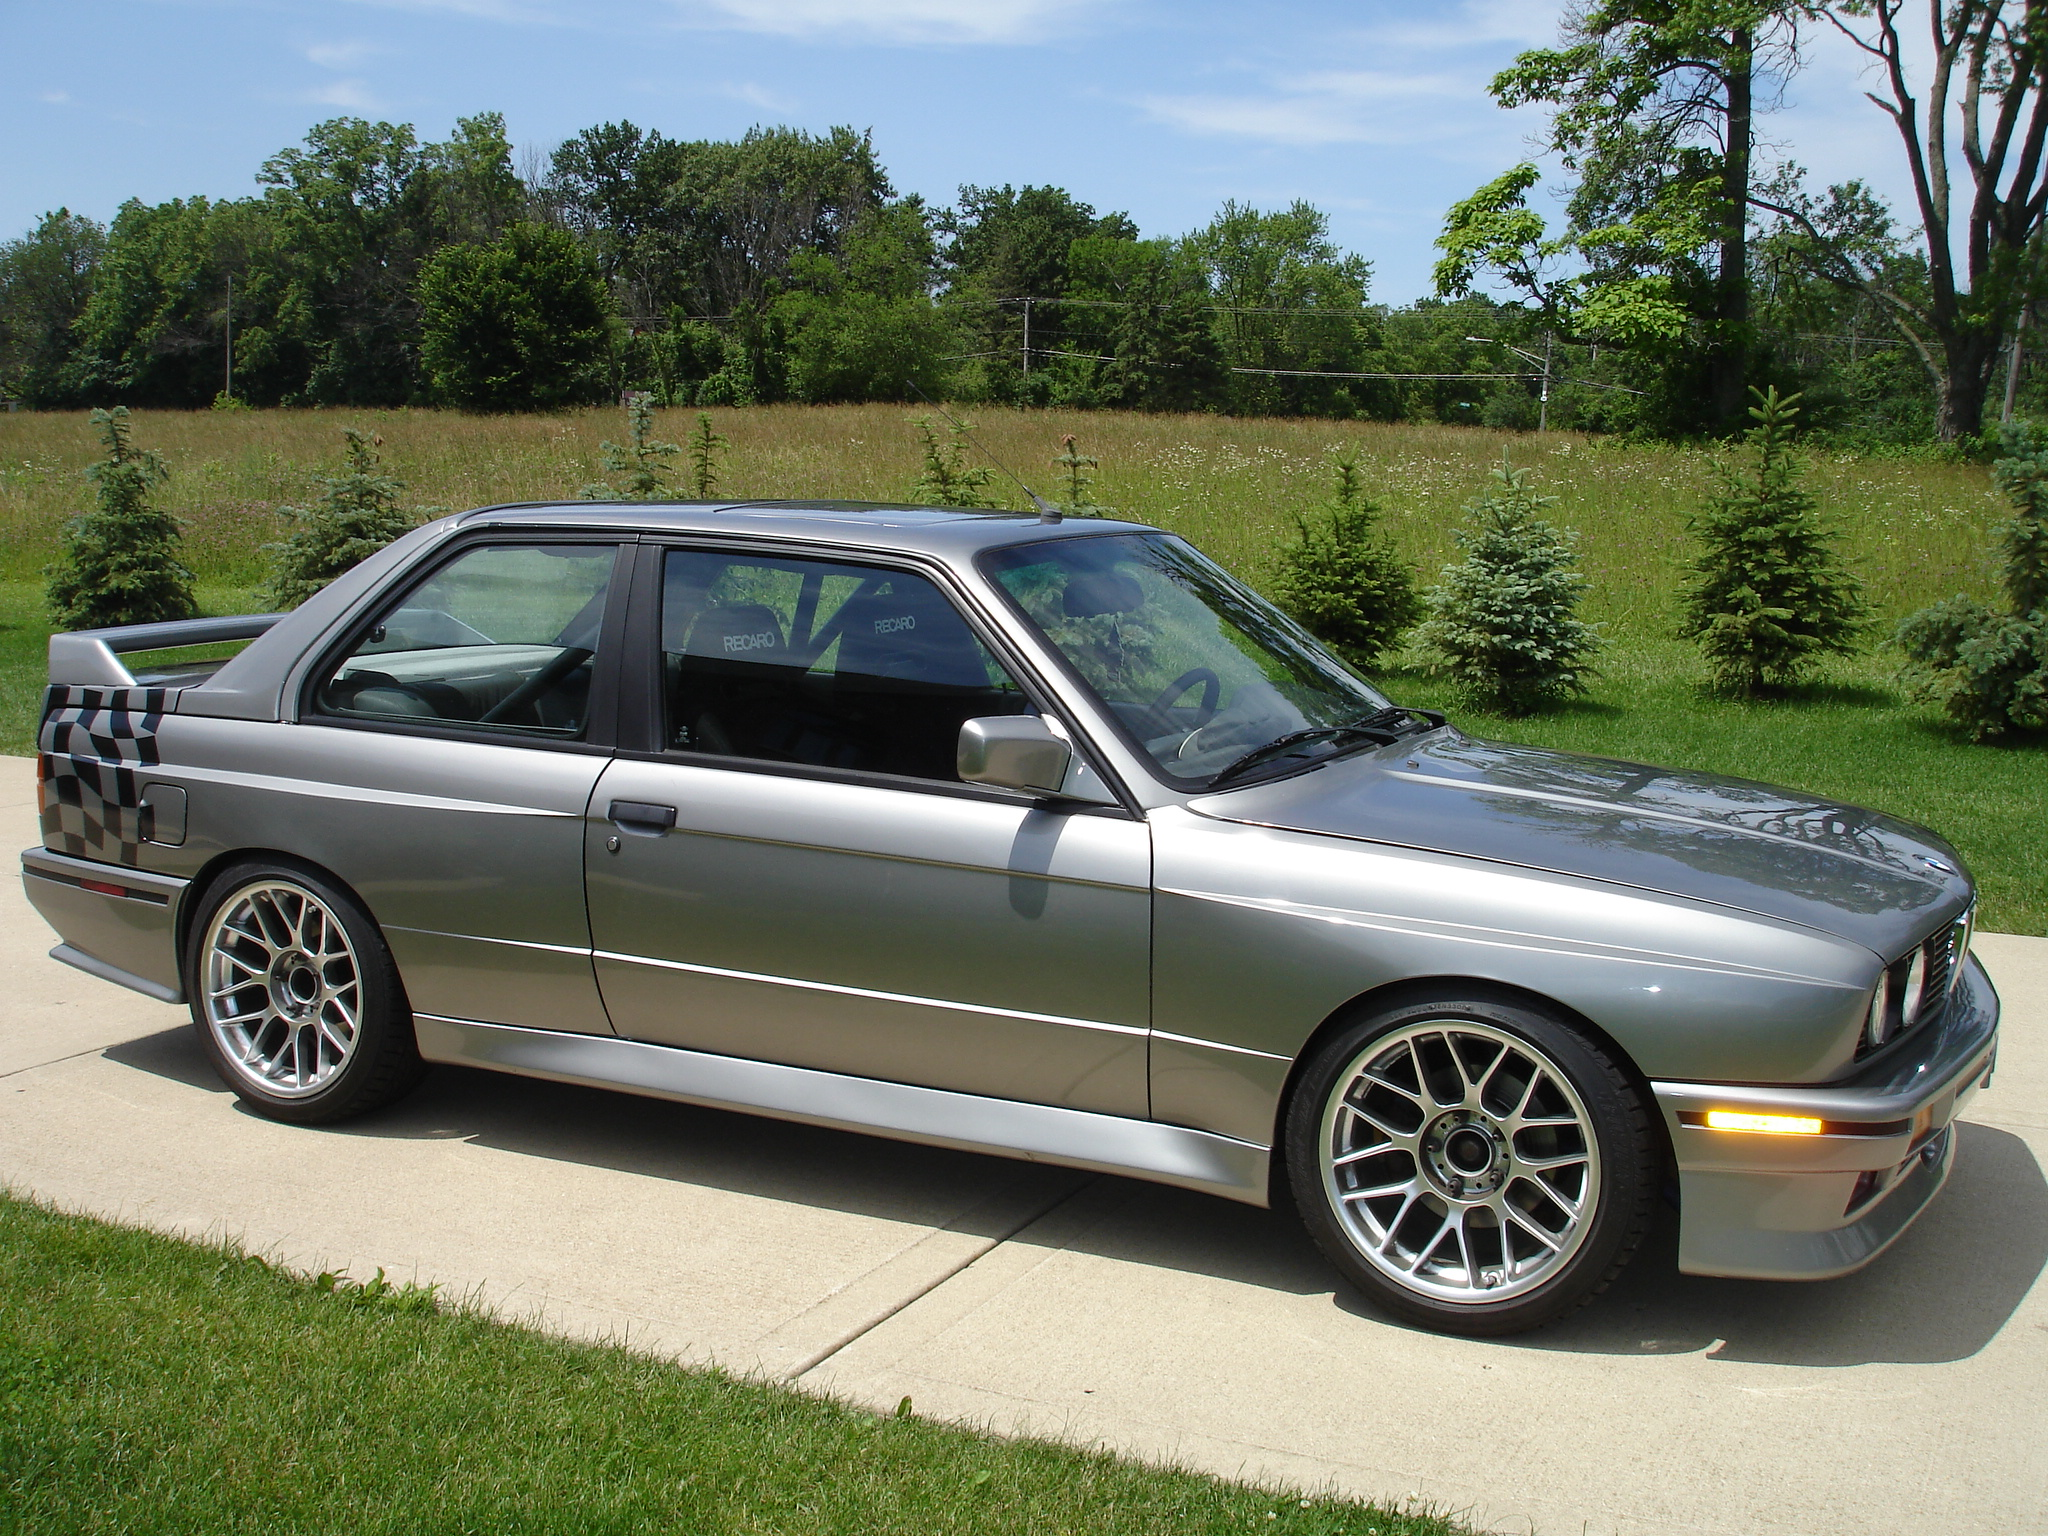 1988 Bmw E30 M3 With Inline 6 Cylinder S52 Engine Up For Grabs In